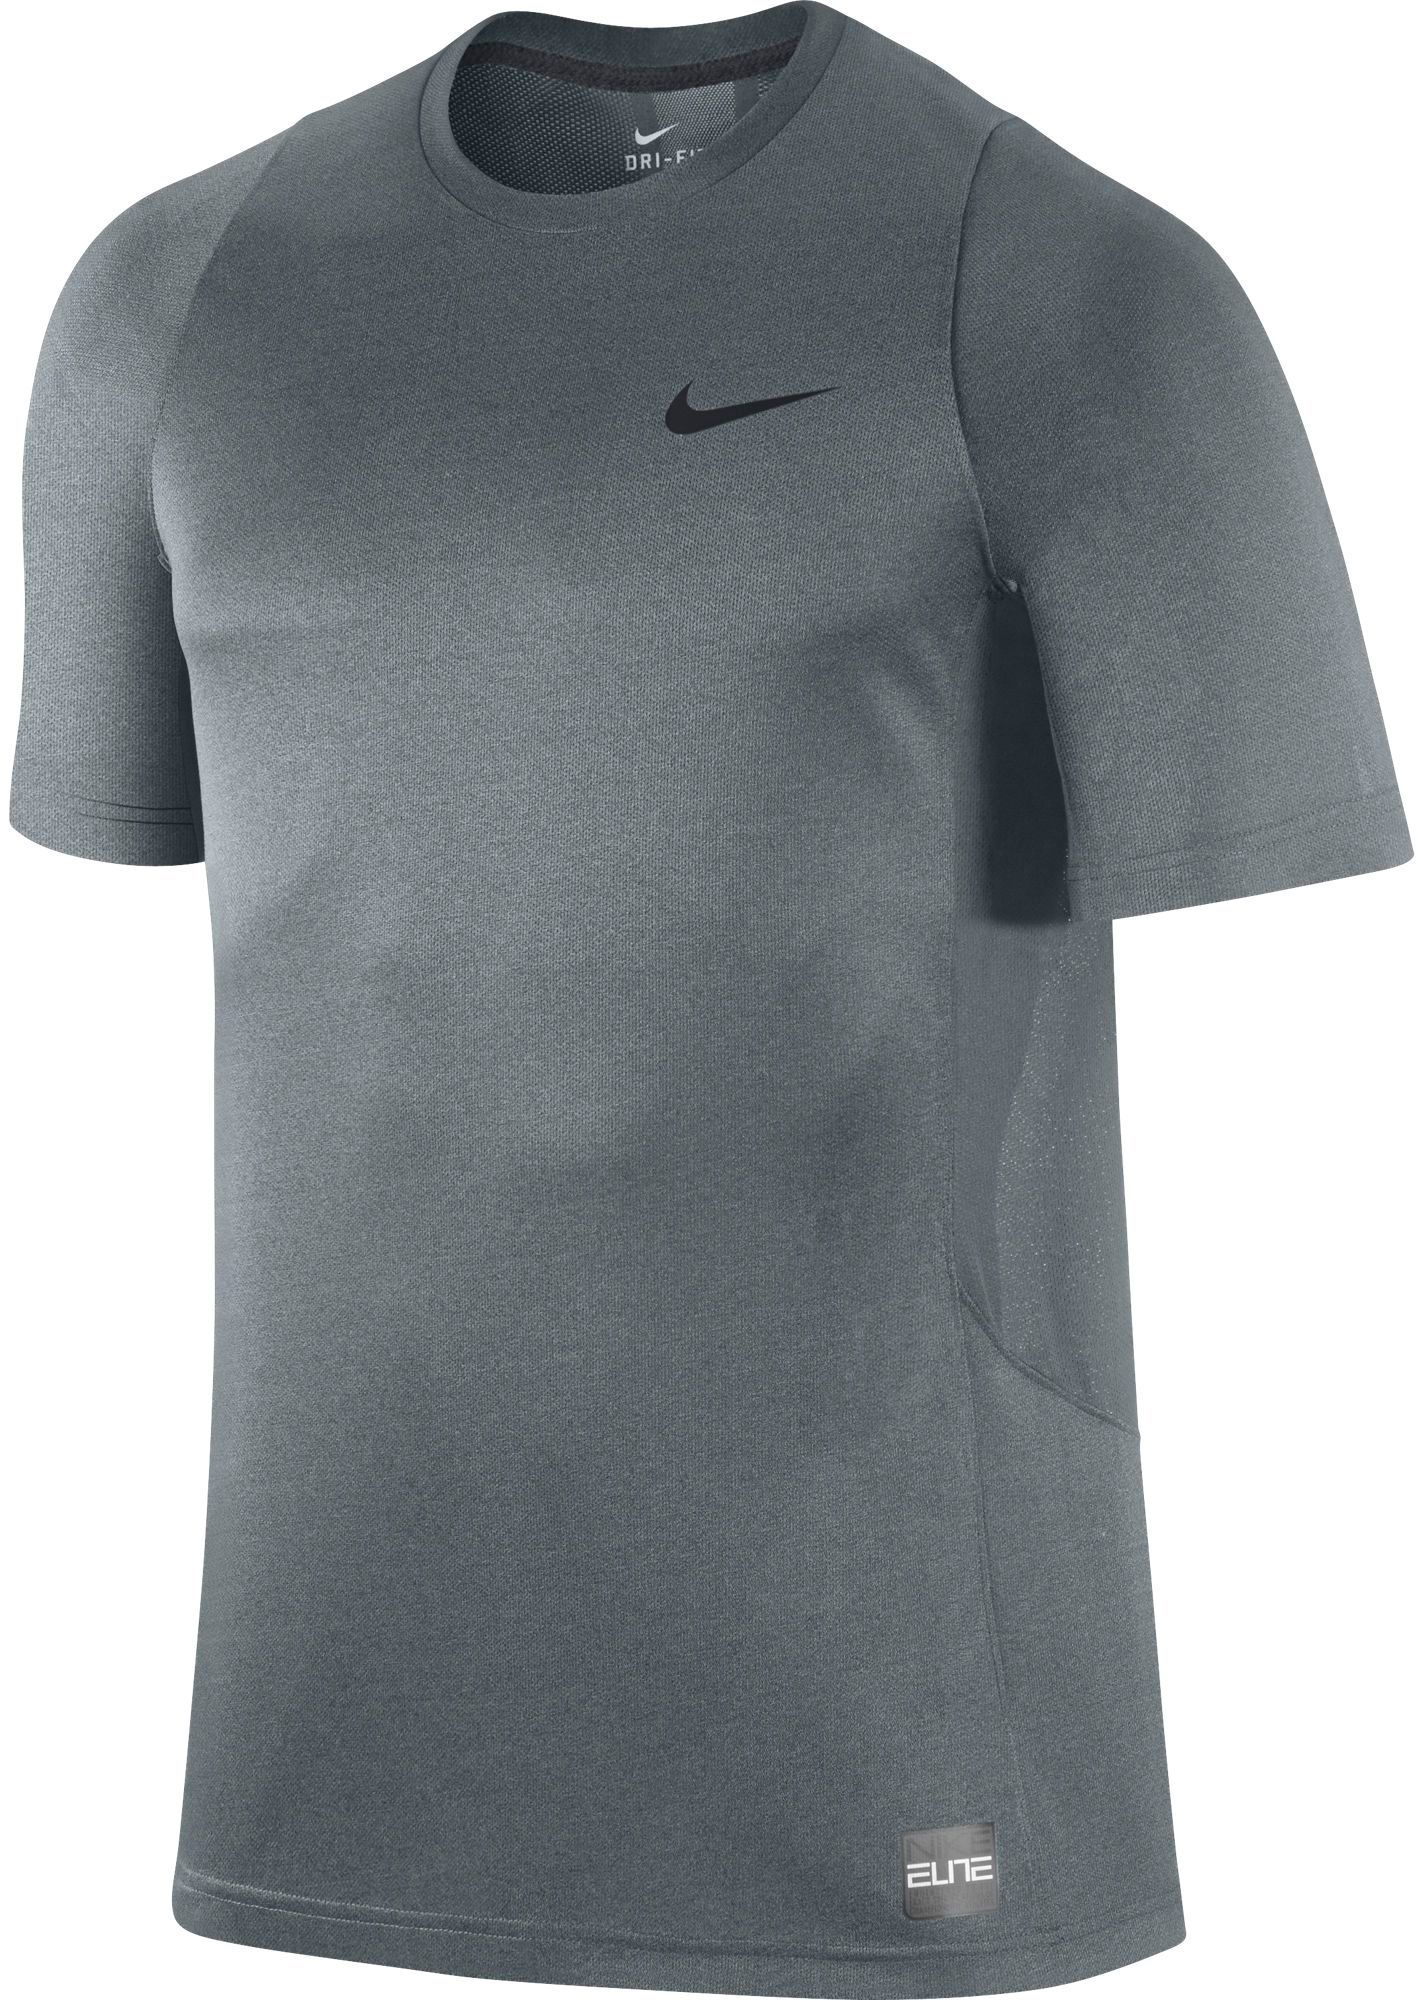 Design your own t-shirt miami - Product Image Nike Mens Elite Shooter 20 Basketball T Shirt